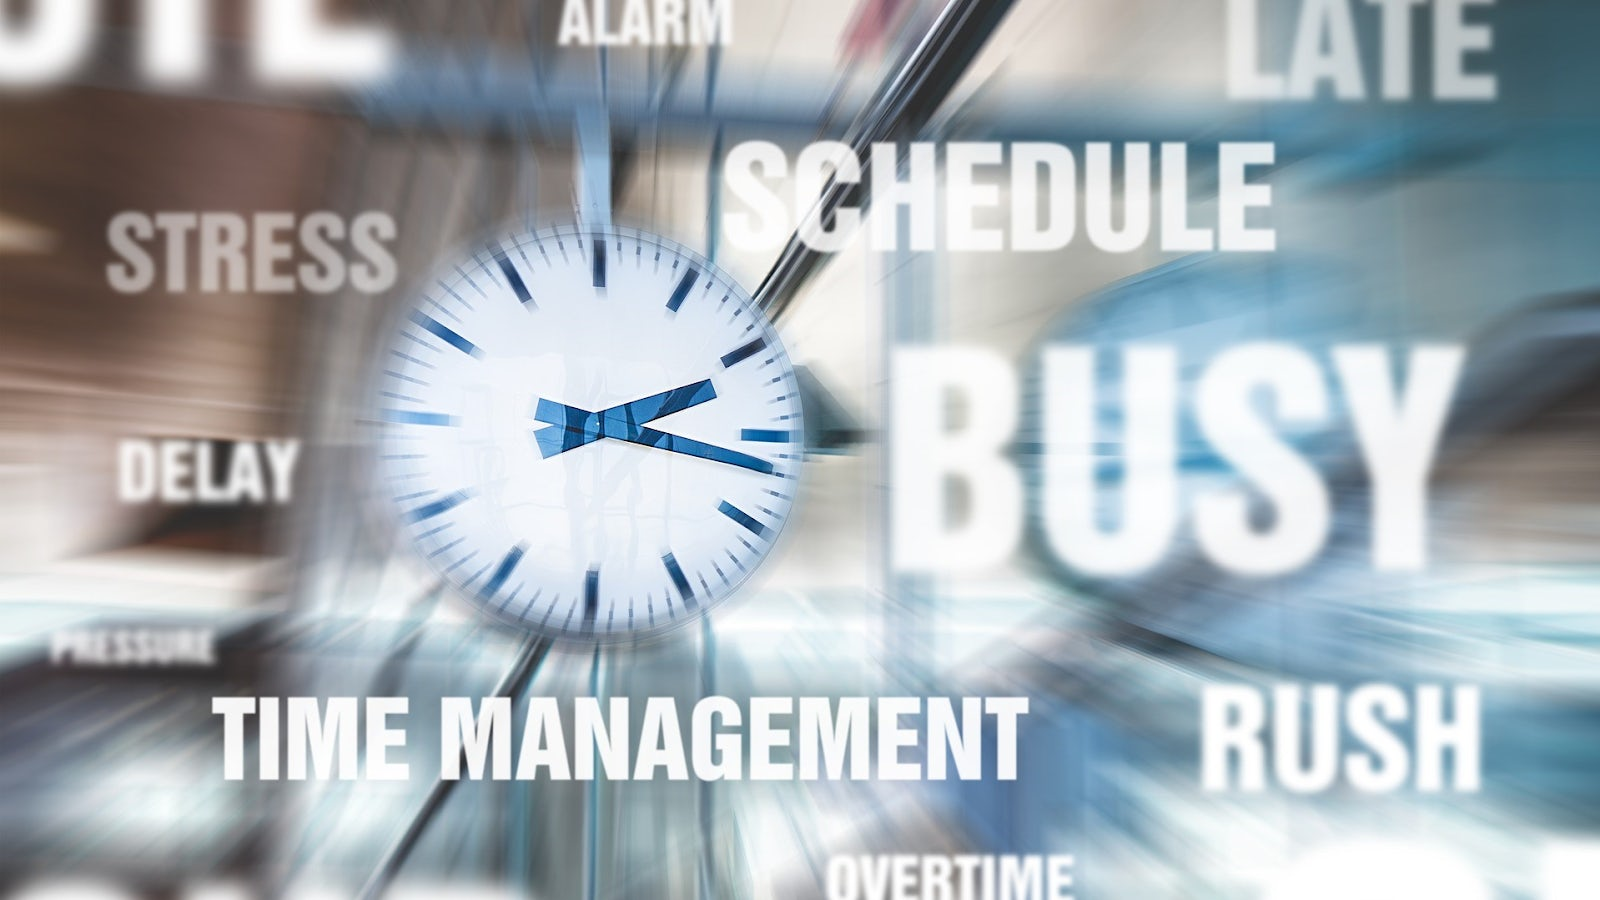 Time management, busy, rush, schedule, stress.